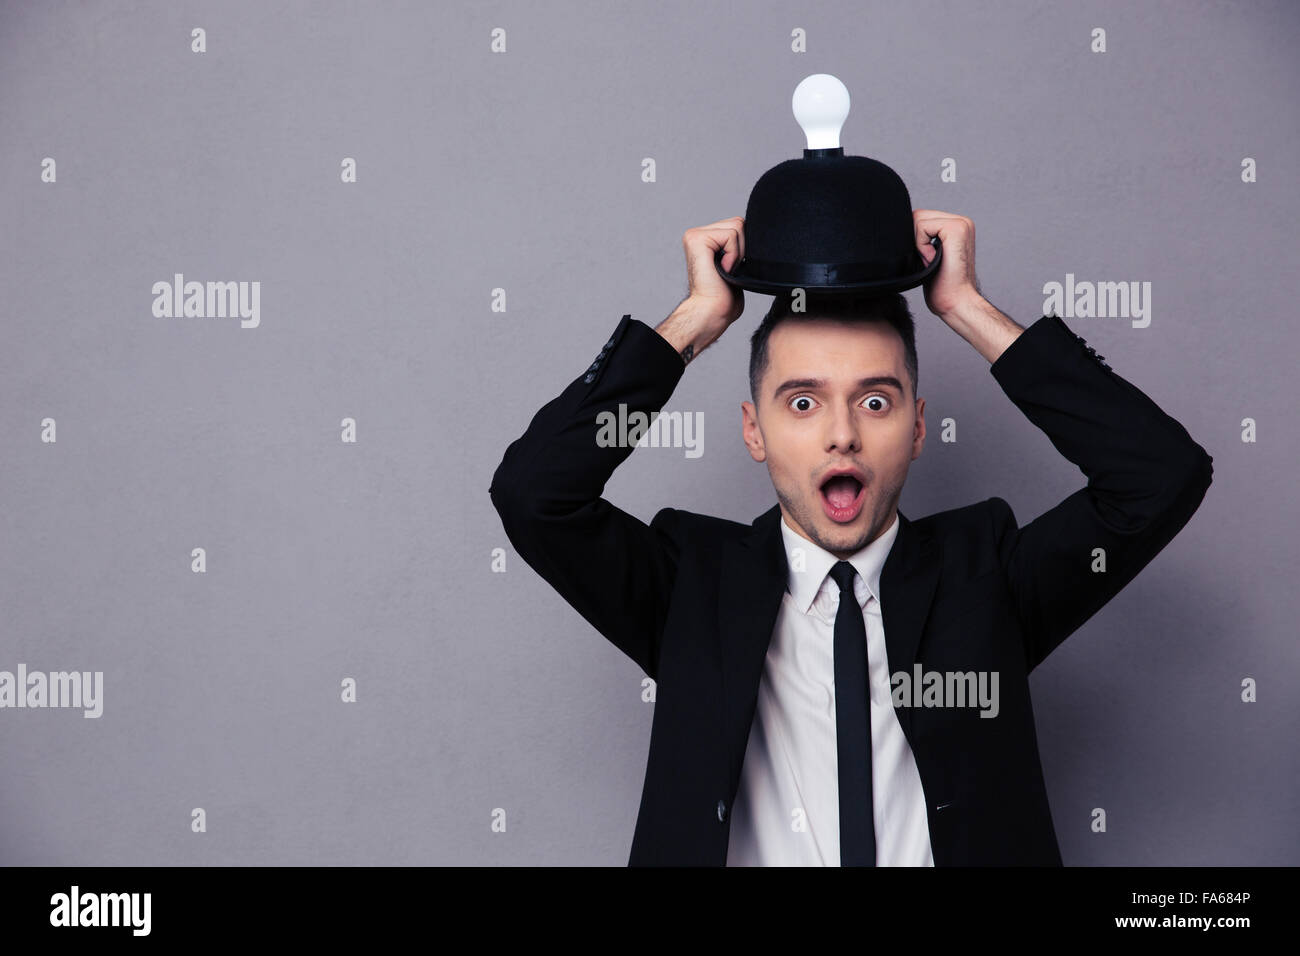 Concept photo of a businessman having a idea over gray background - Stock Image